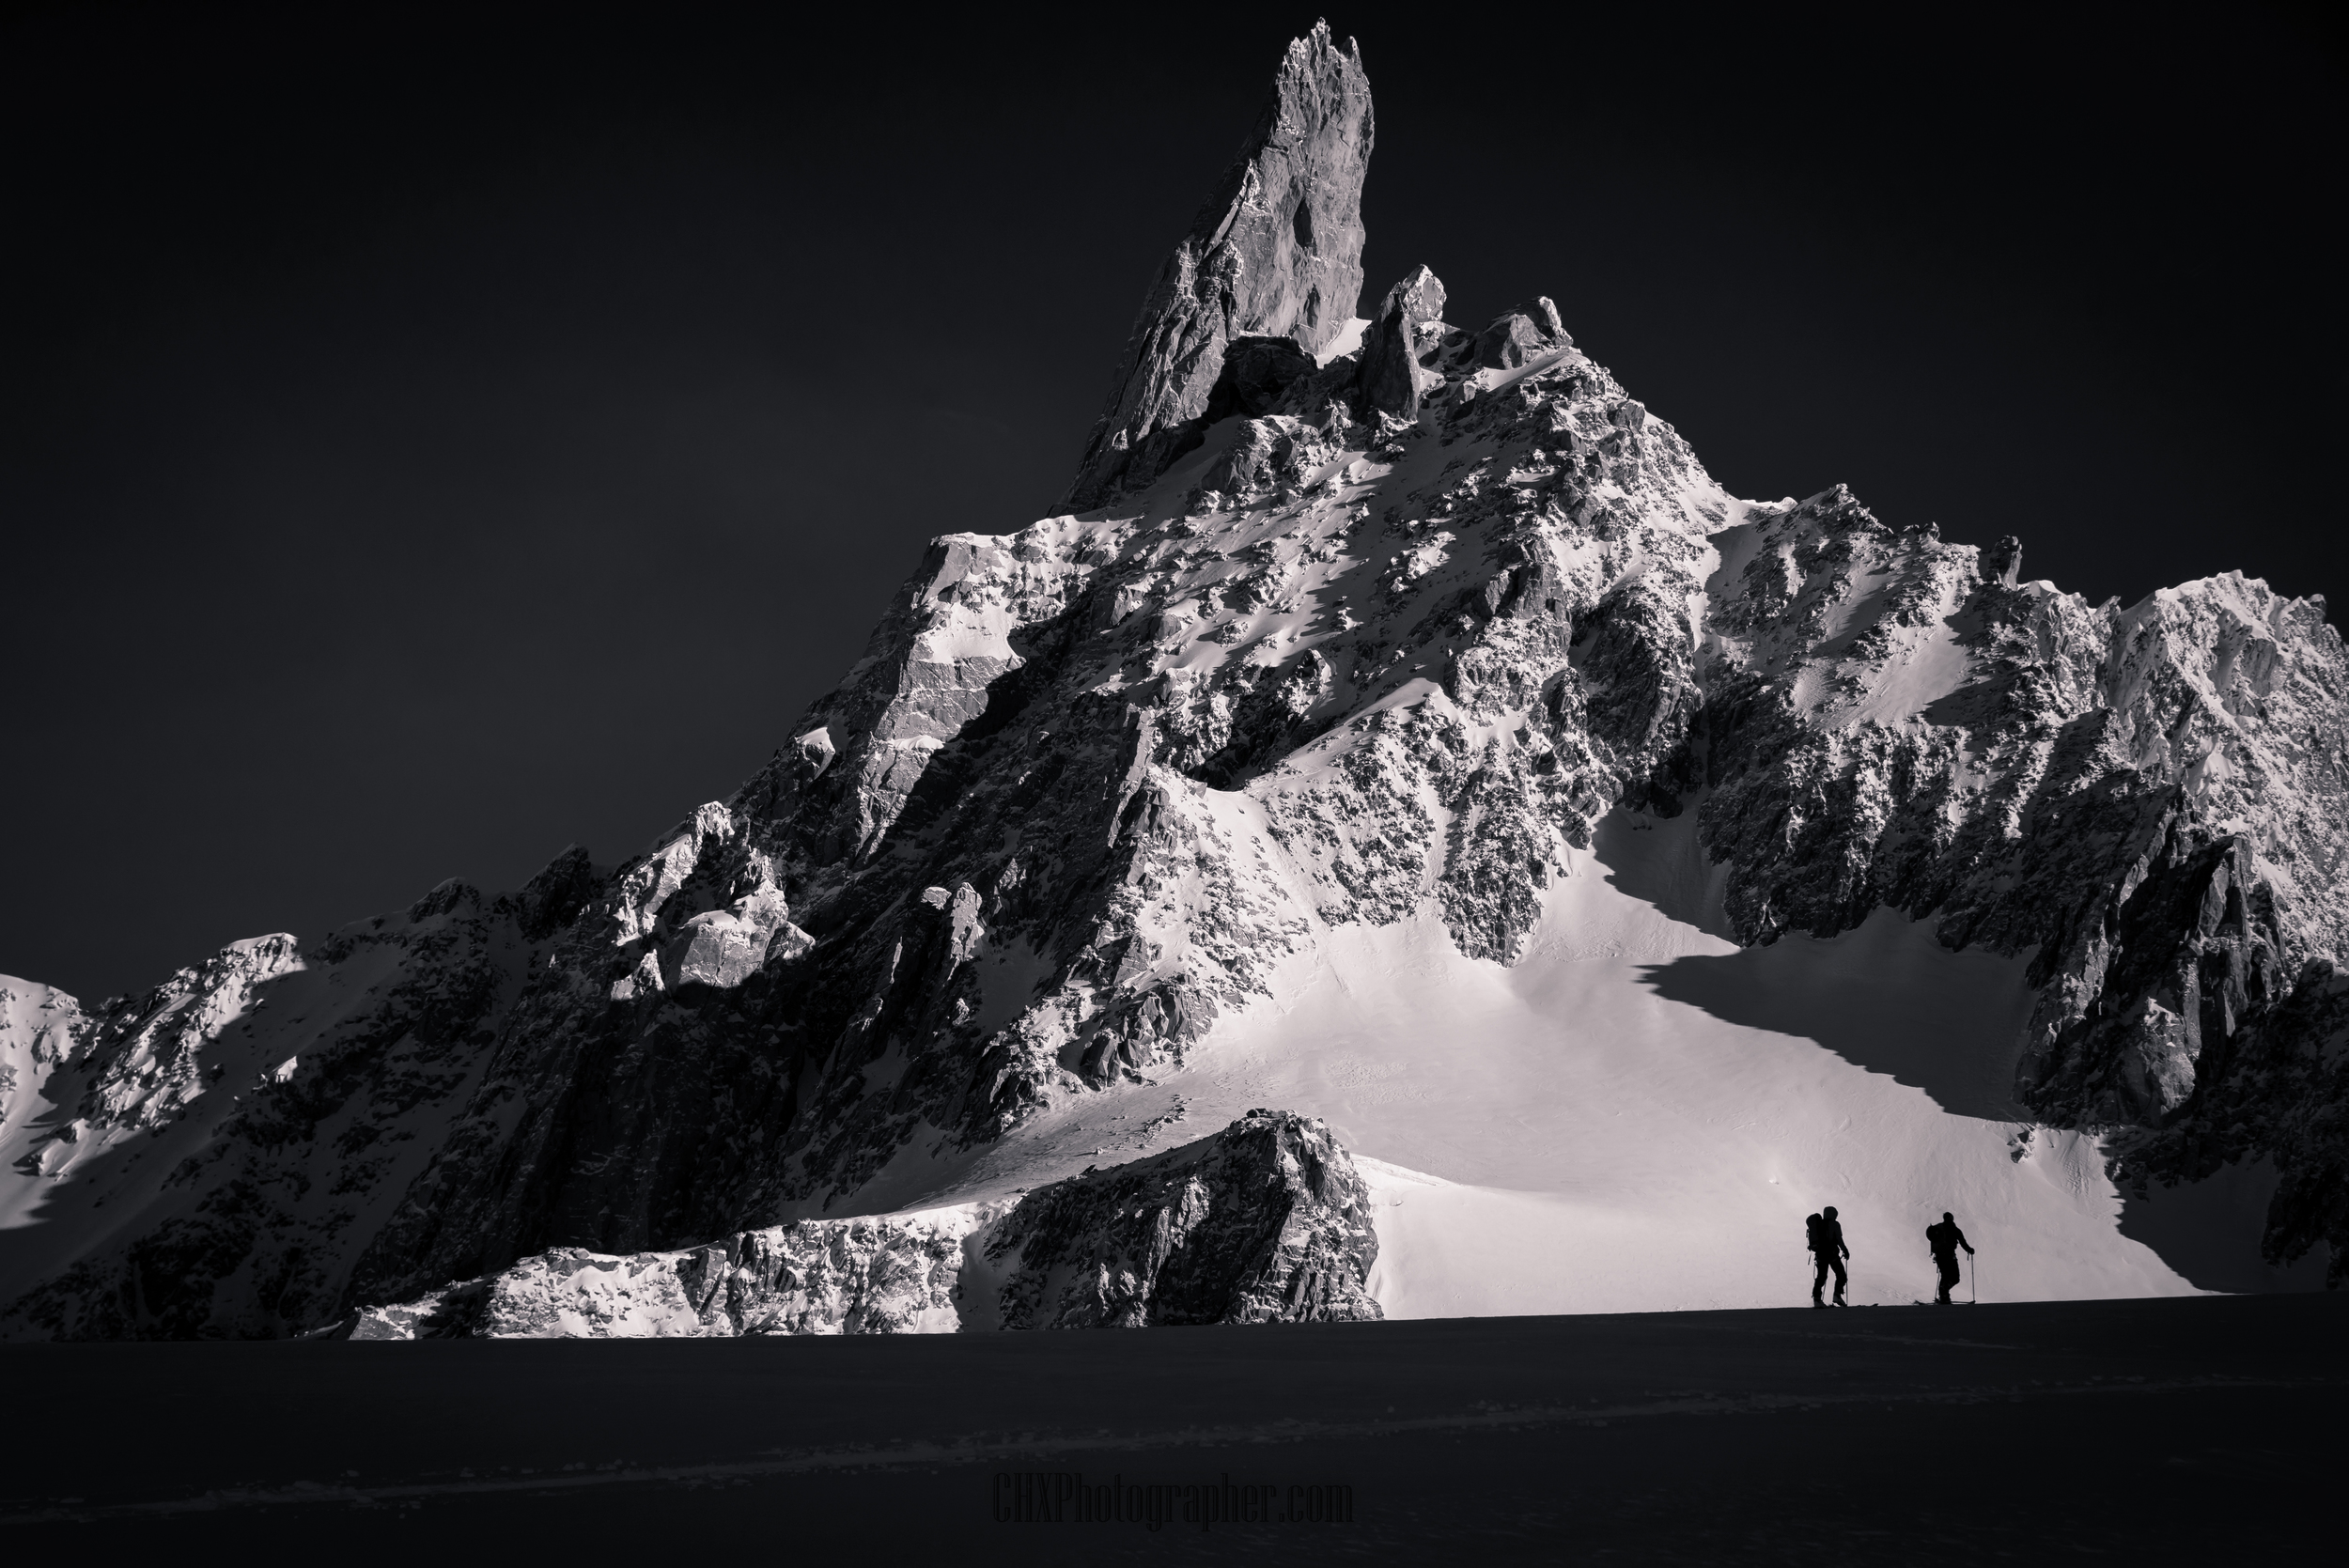 Ski touring in the Mont Blanc Massif above Courmayer, Italy